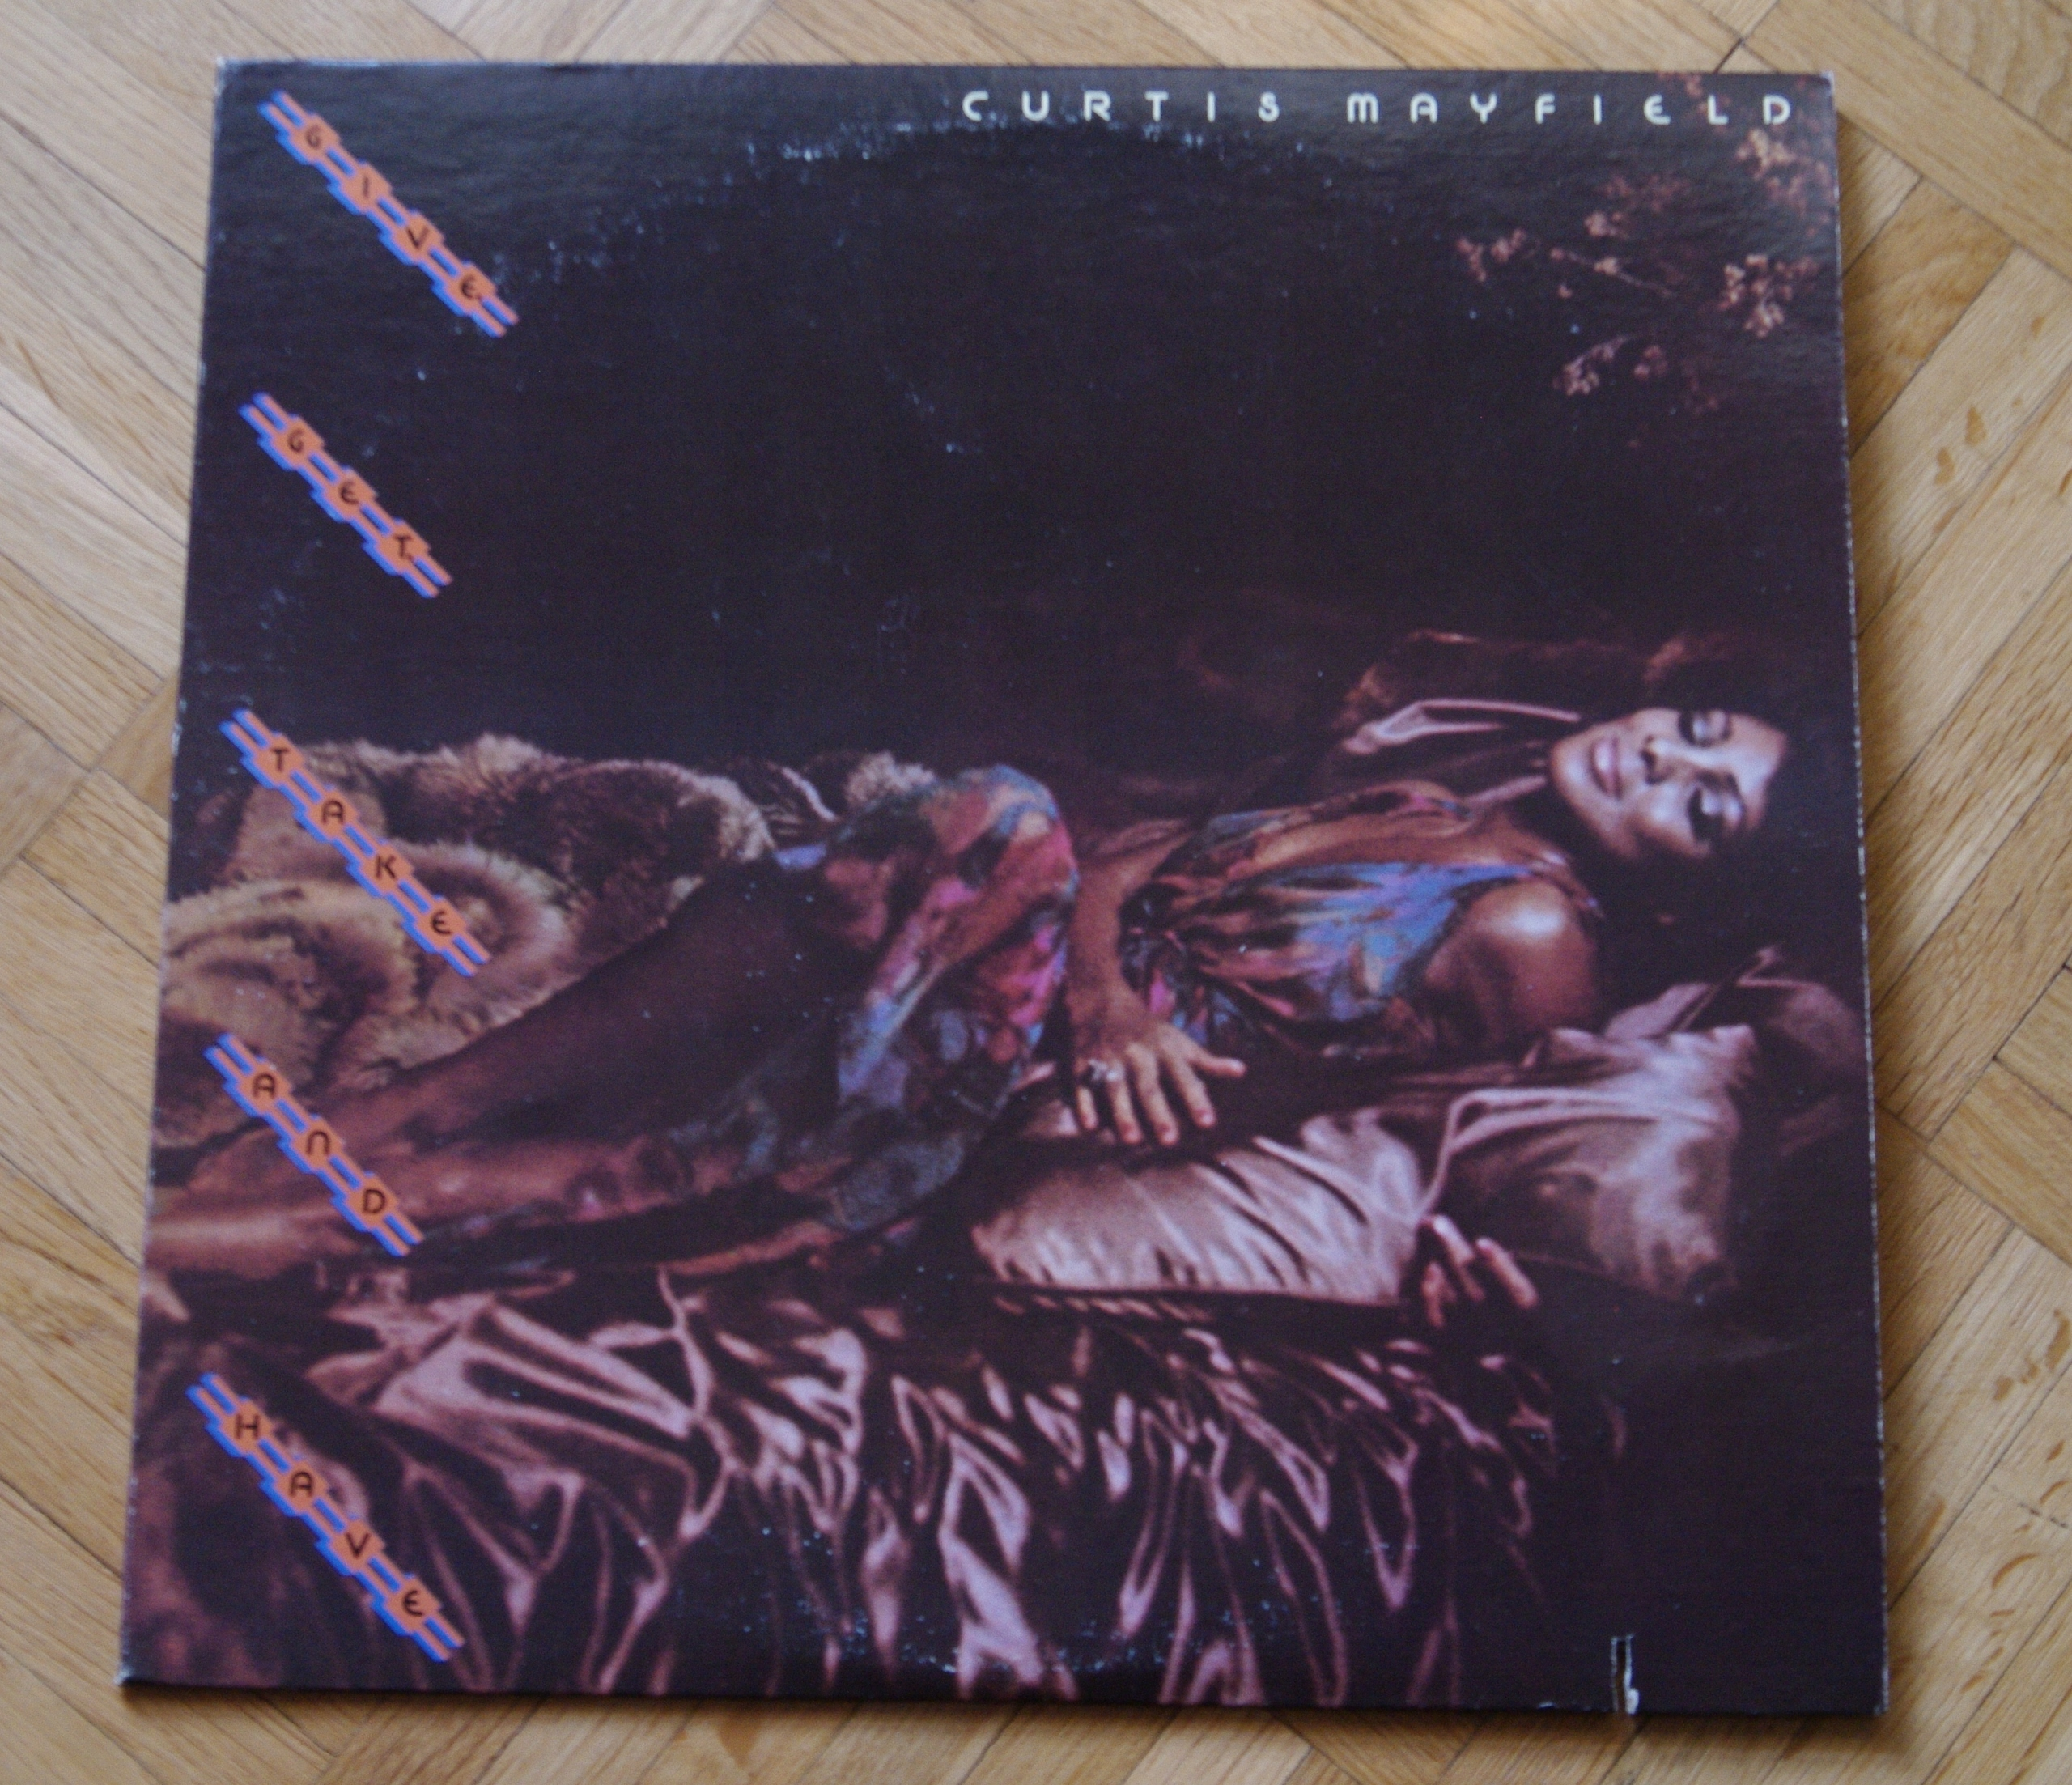 CURTIS MAYFIELD Give Get Take Have 1ST US PRESS